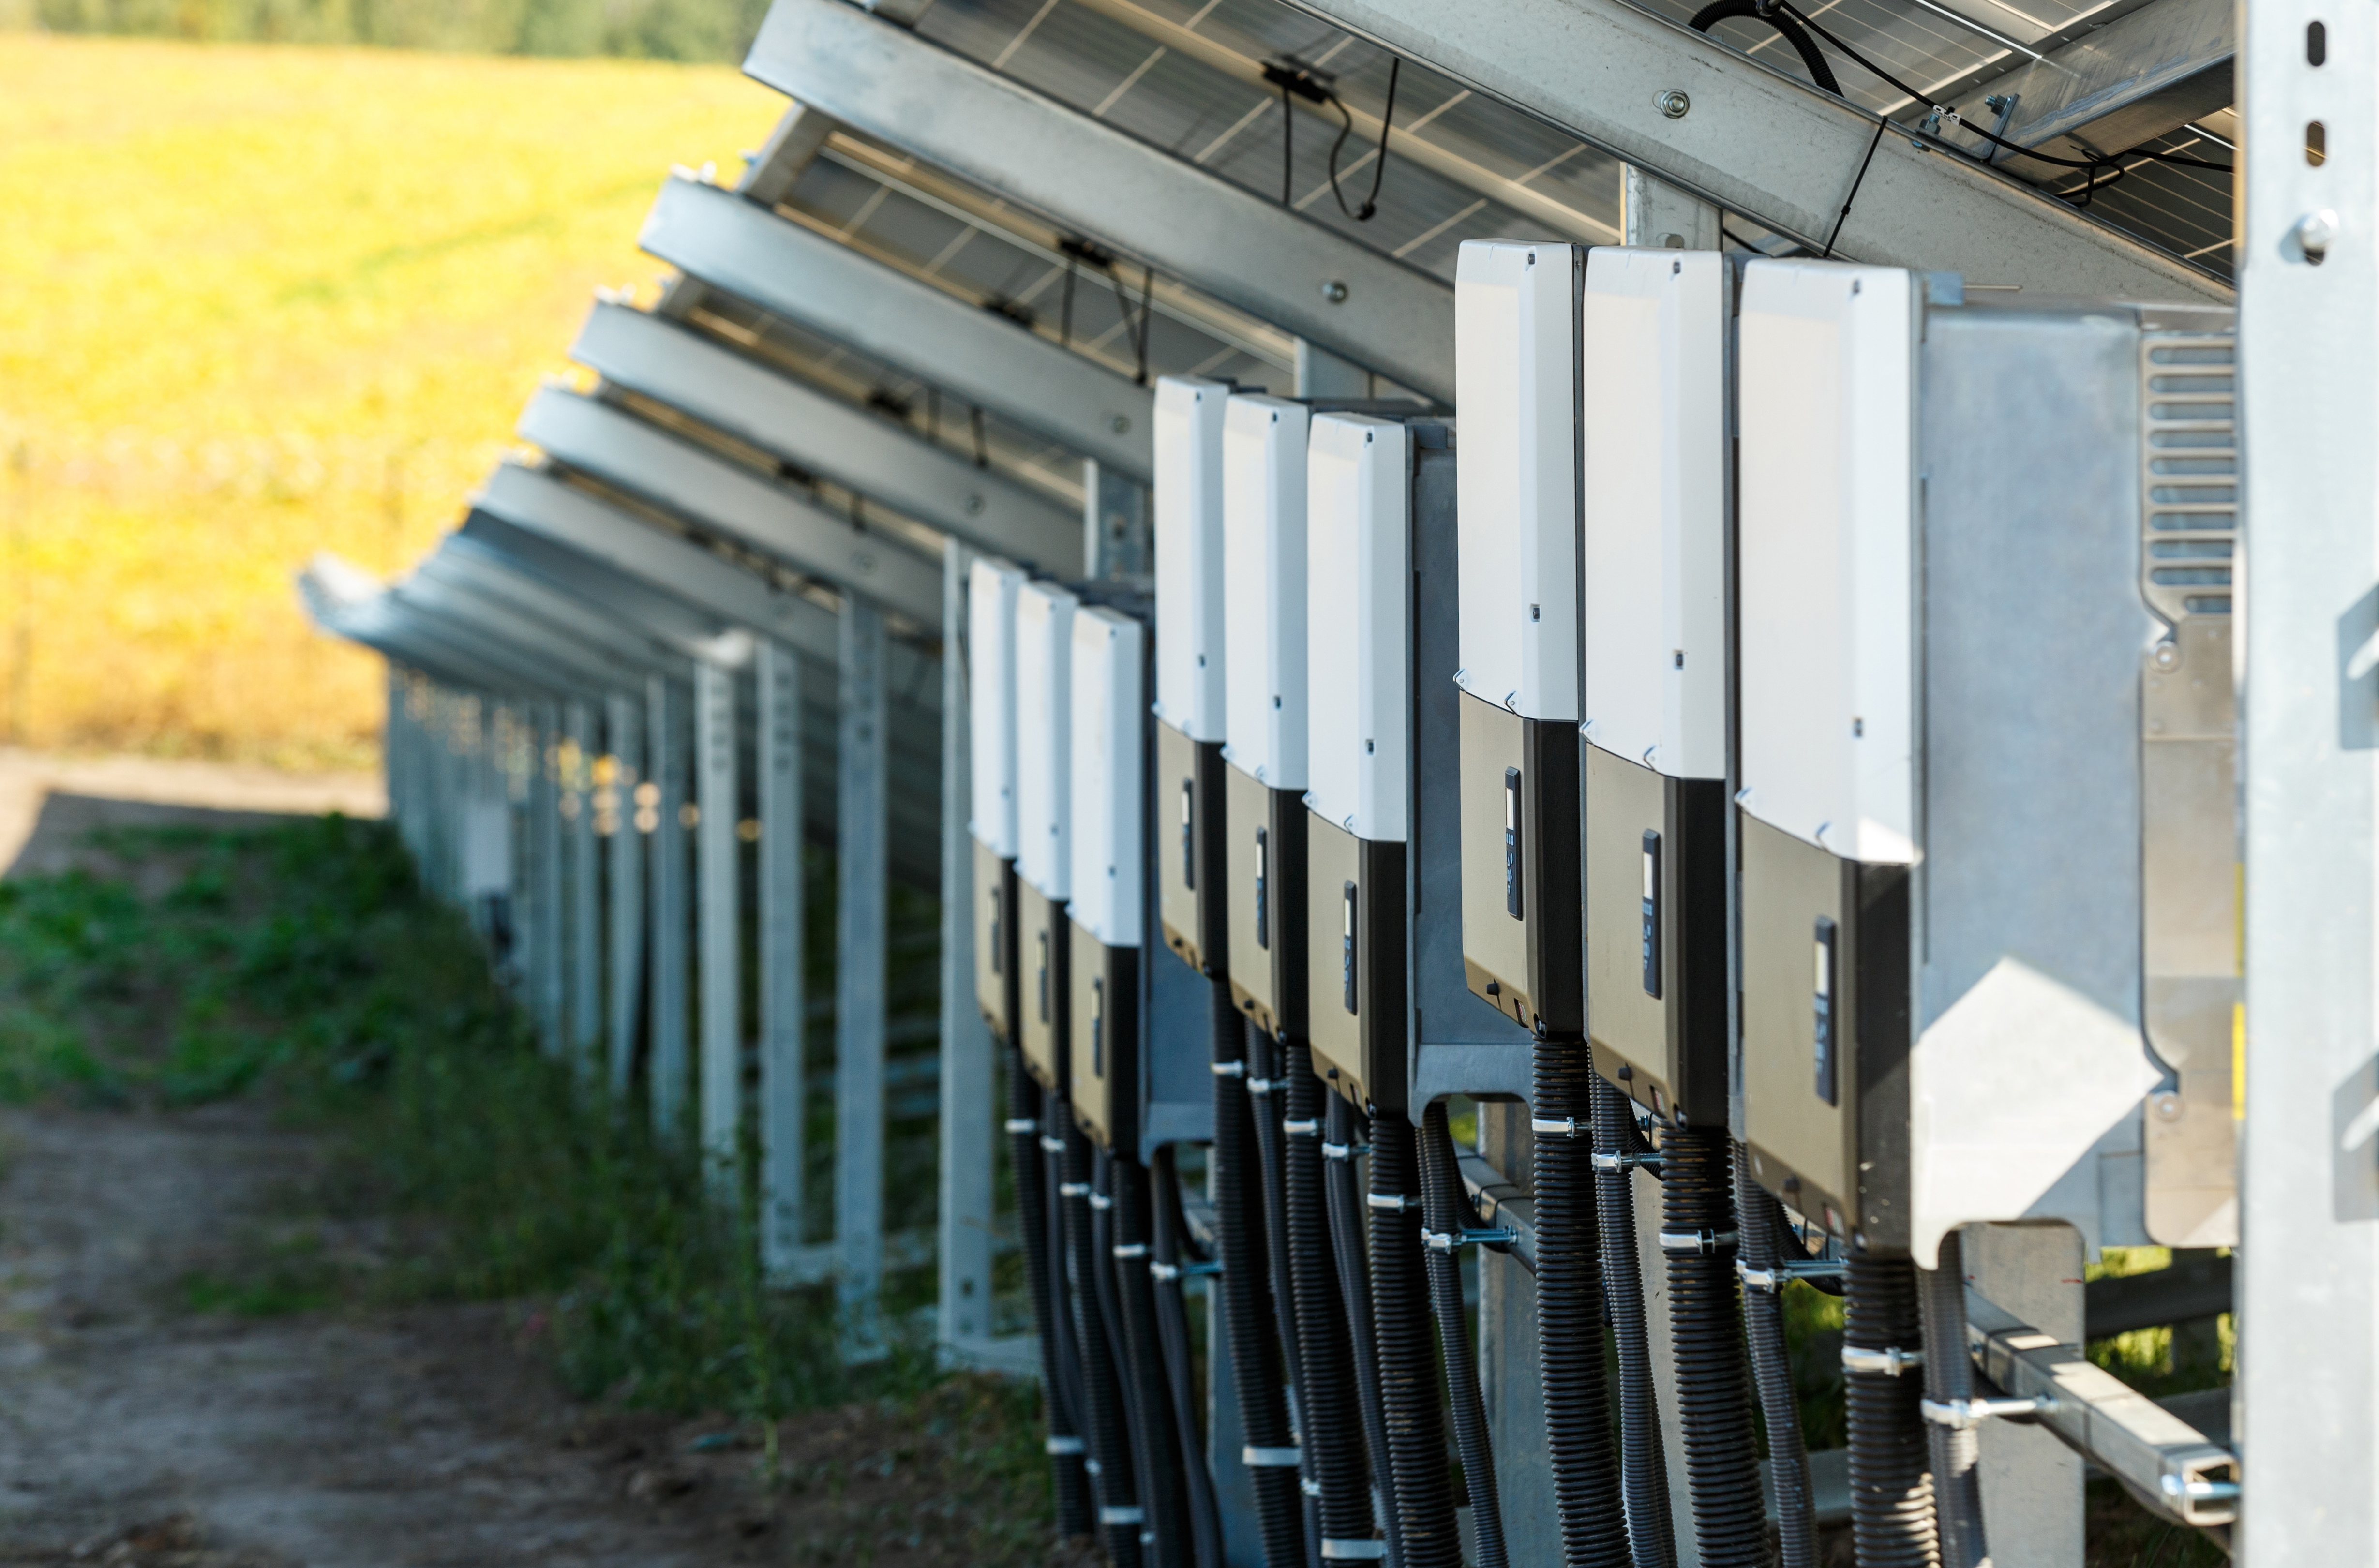 Inverters for solar photovoltaic modules using renewable solar energy